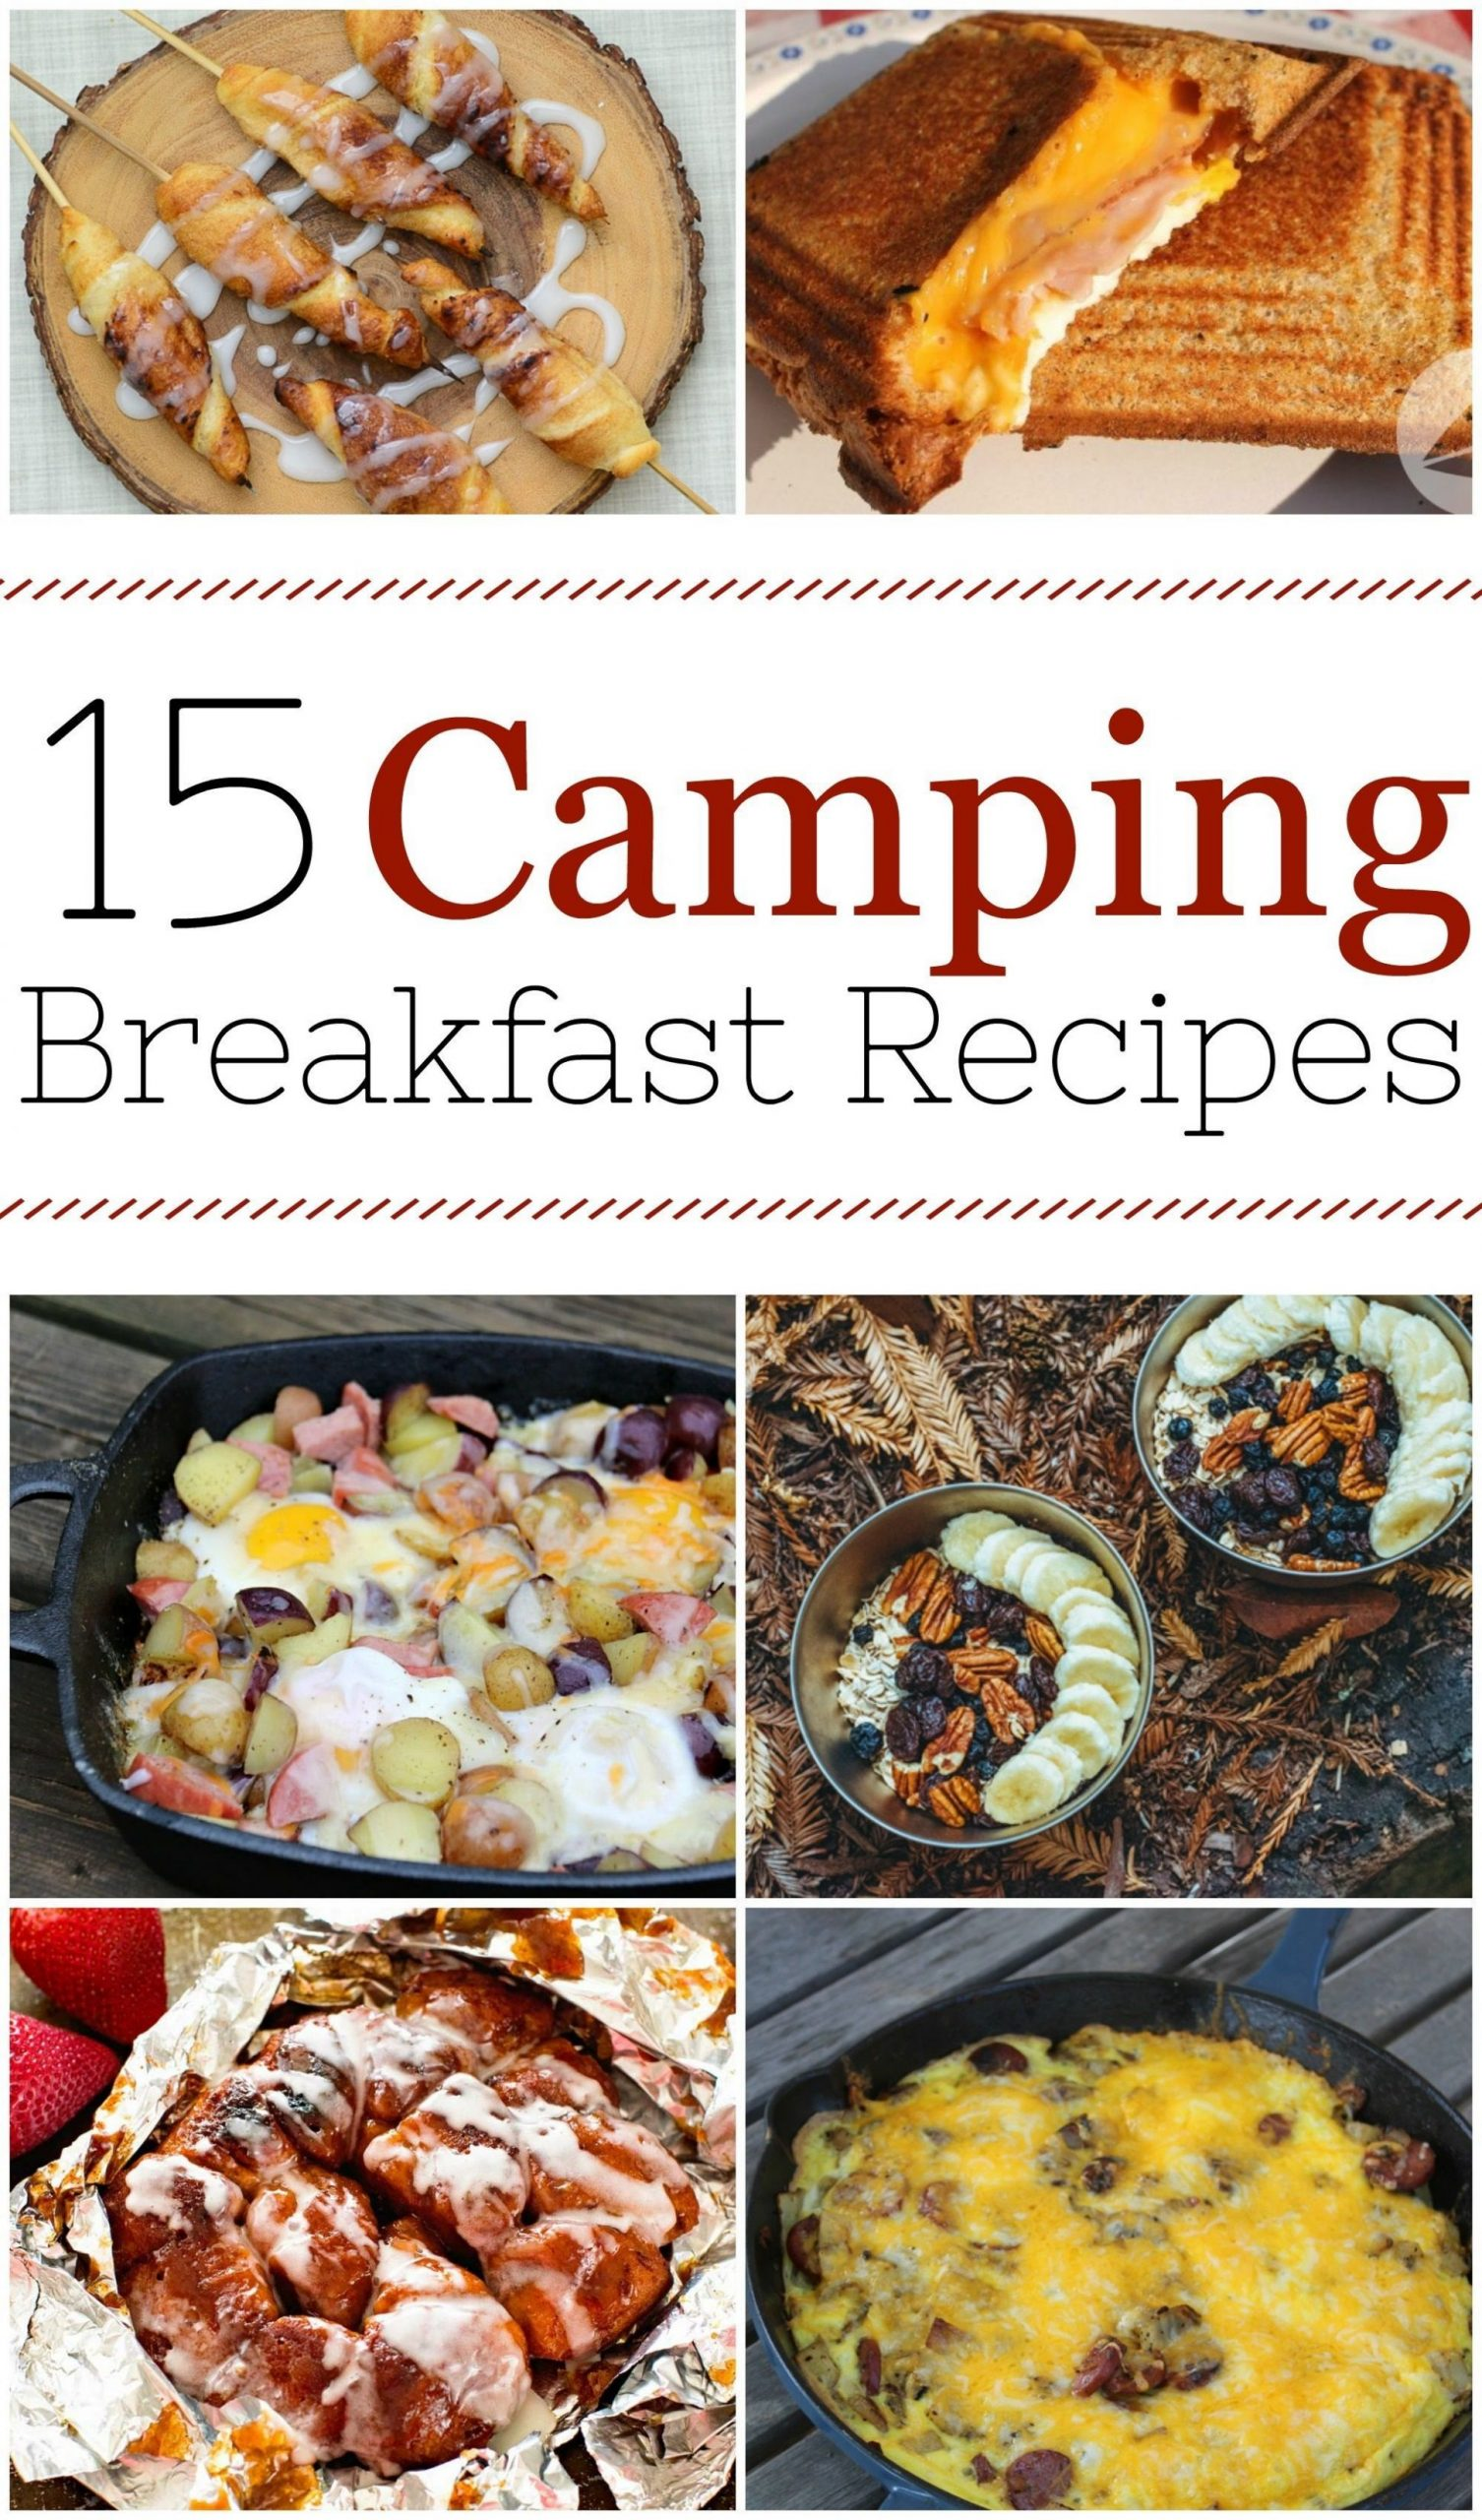 Here are 11 easy camping breakfast ideas for your next trip ...